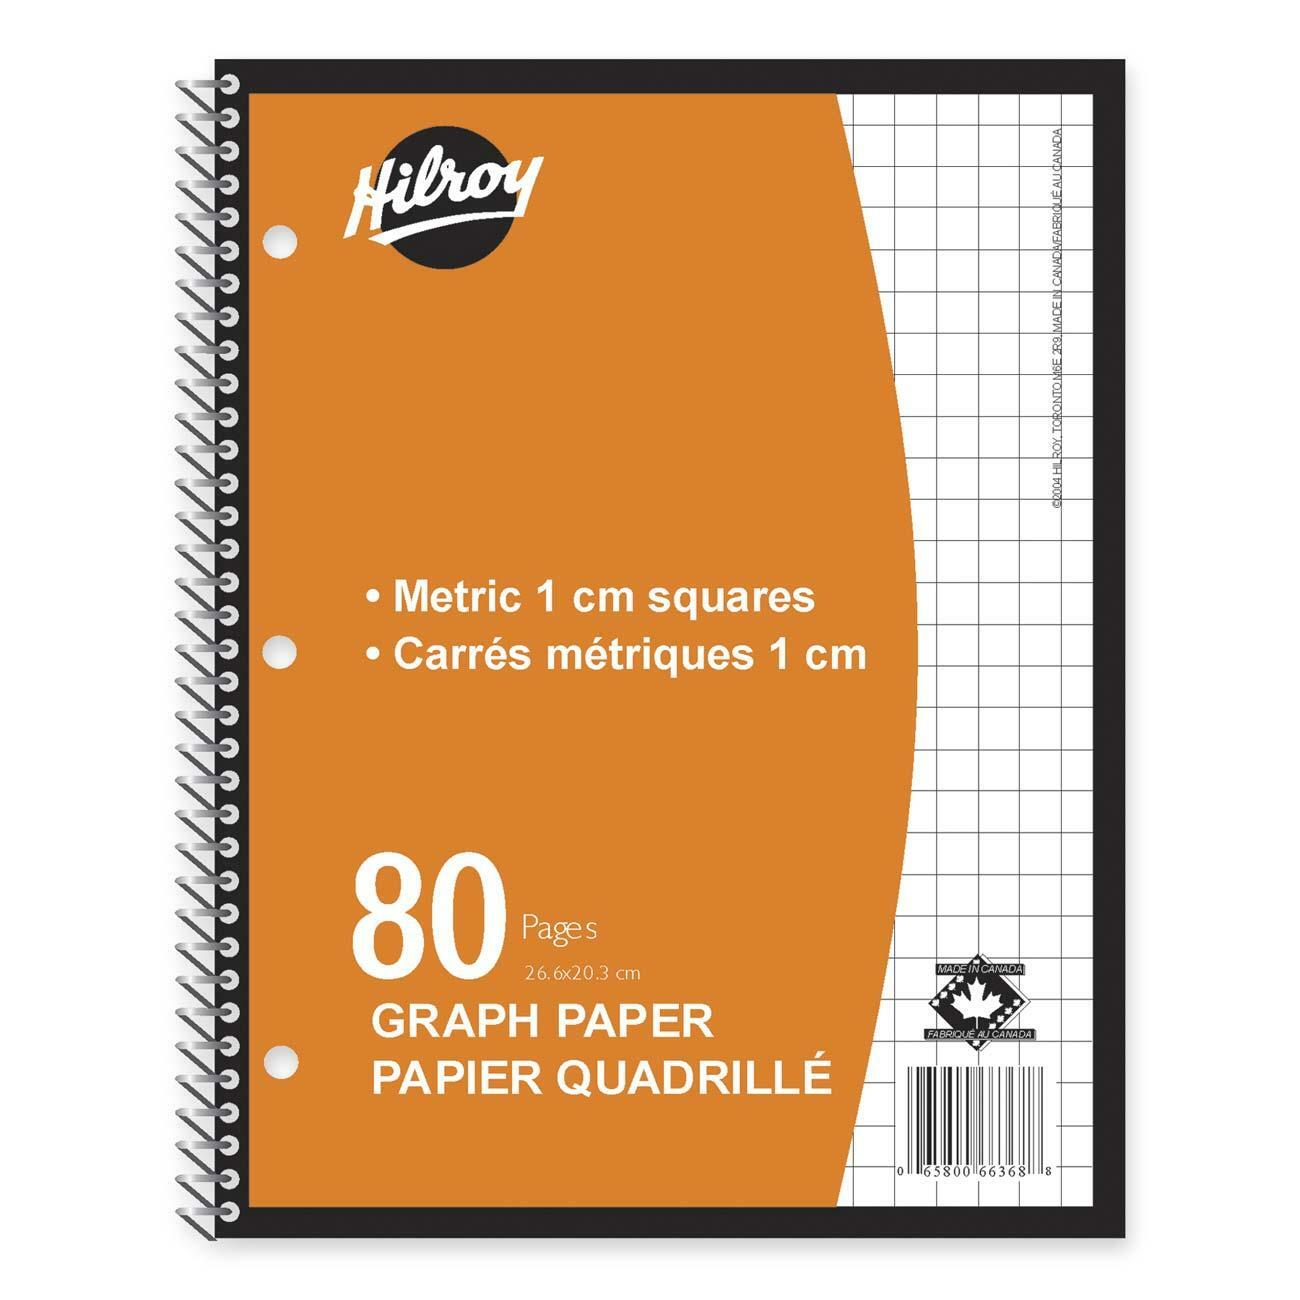 hilroy metric graph paper coil notebook - madill